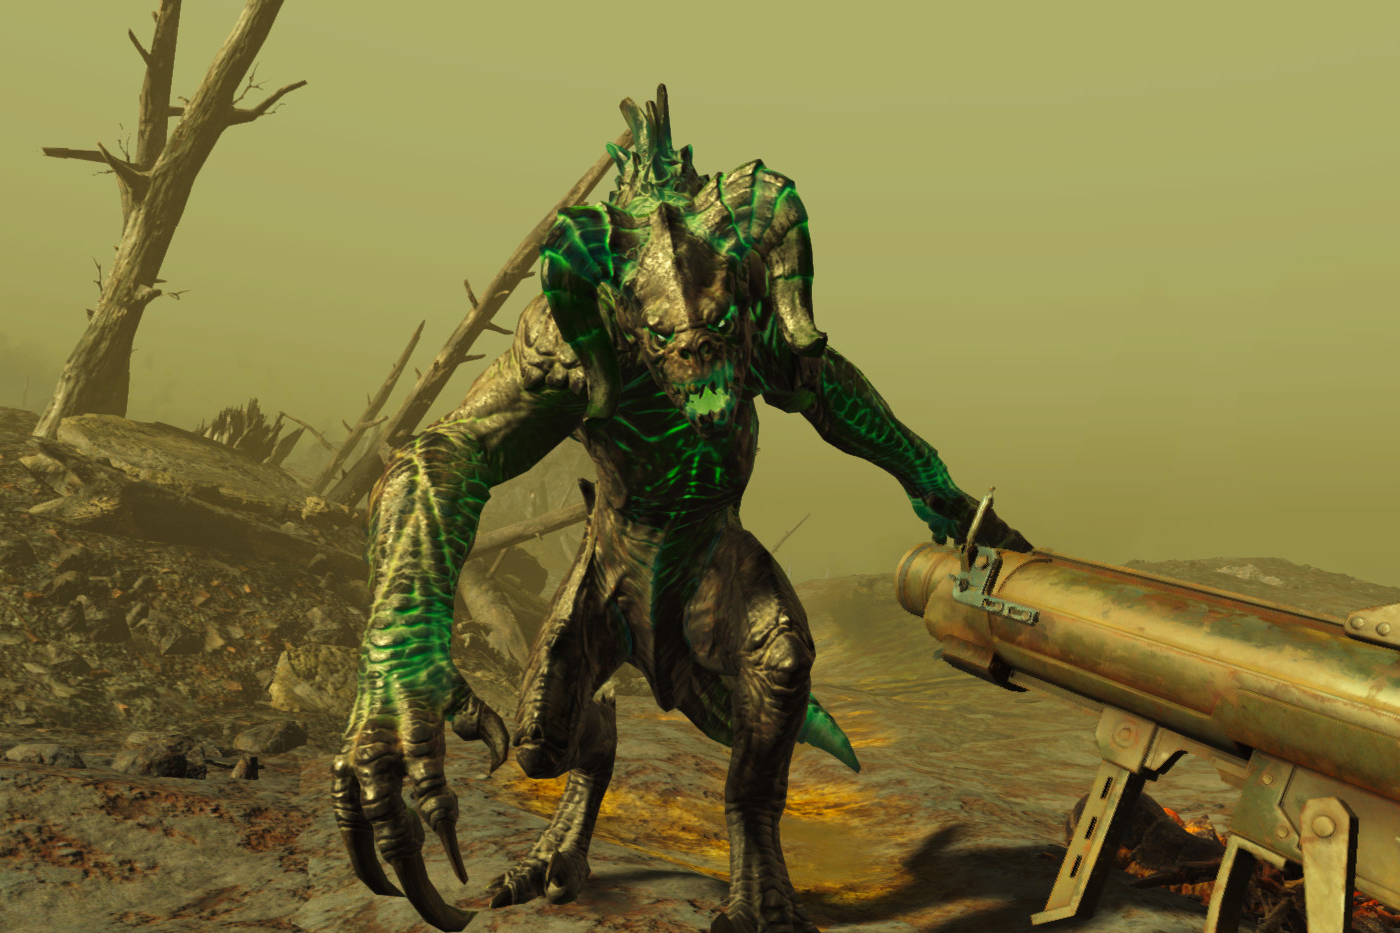 Monster creature in Fallout 4 VR Game